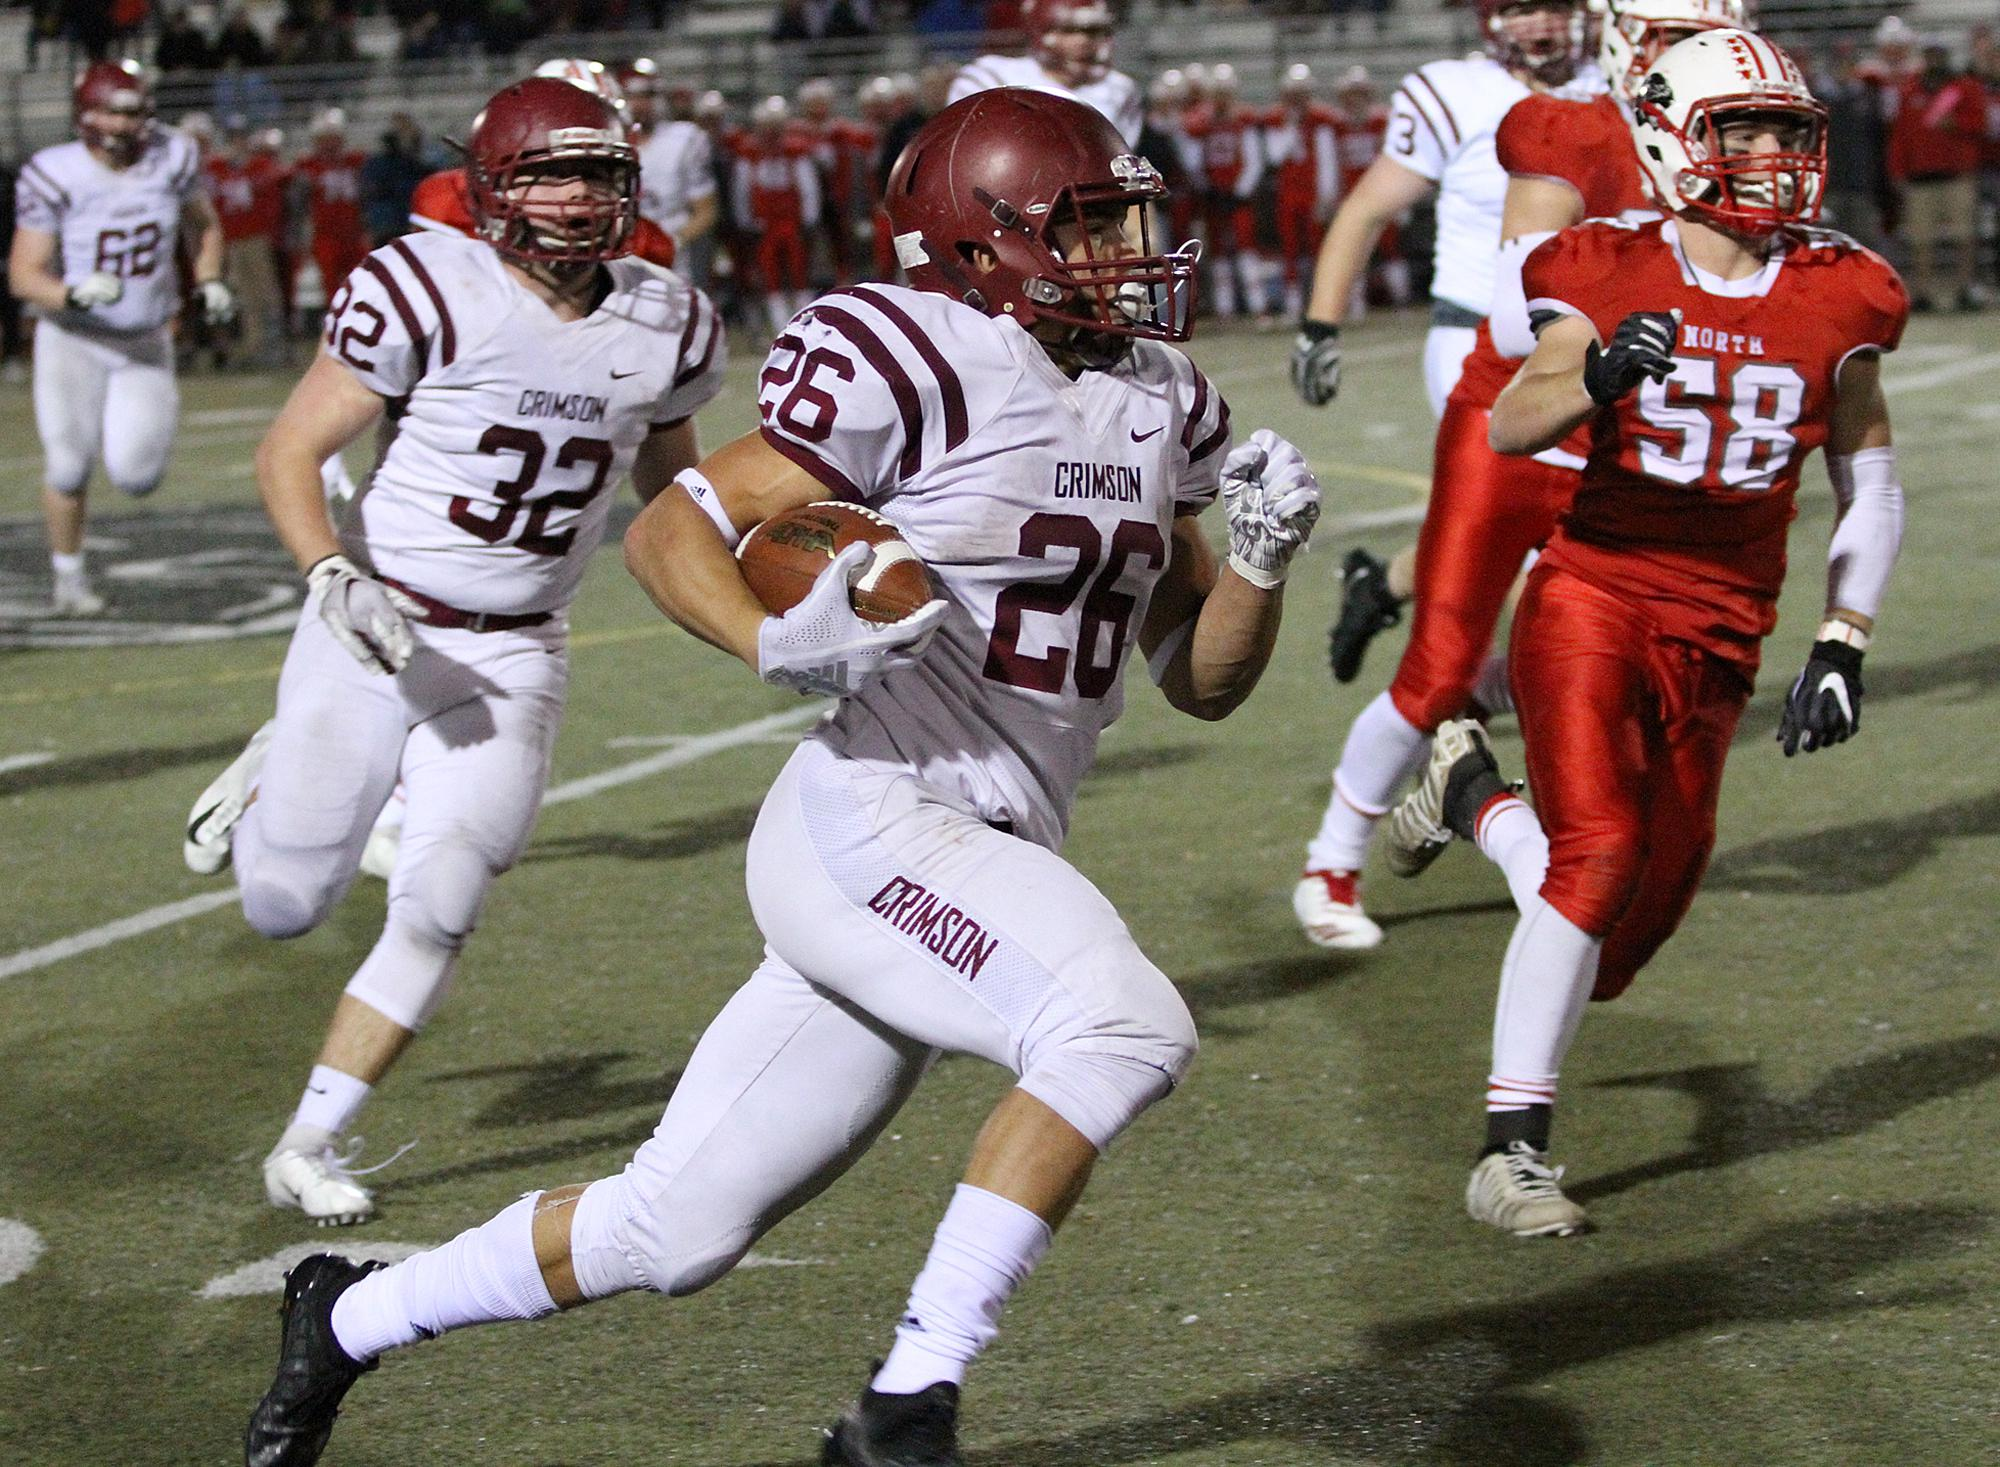 Maple Grove running back Evan Hull had 26 carries for 83 yards in the Crimson's 21-13 loss at Lakeville North Friday night. Photo by Drew Herron, SportsEngine